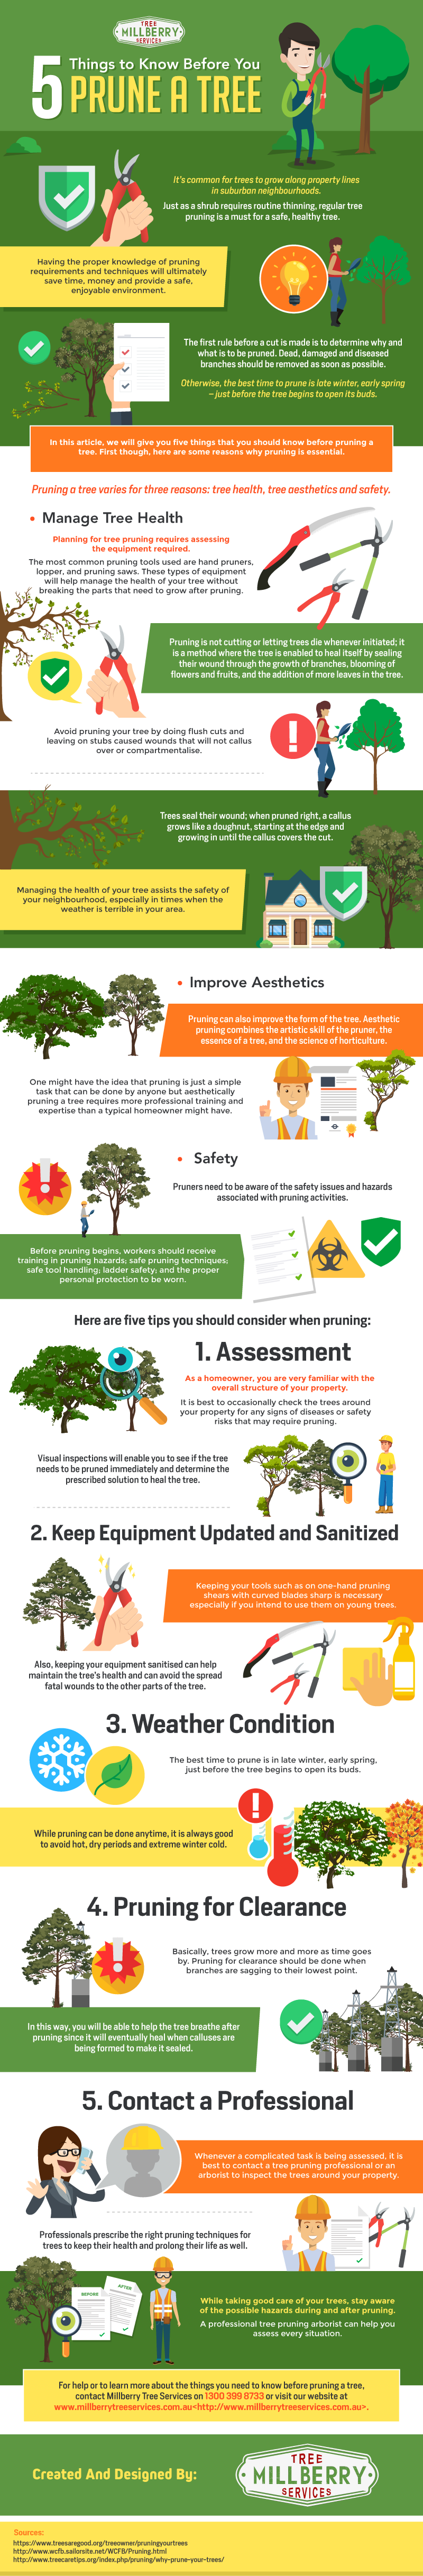 The Importance of Pruning: The 5-Point List for Tree Pruning - Infographic